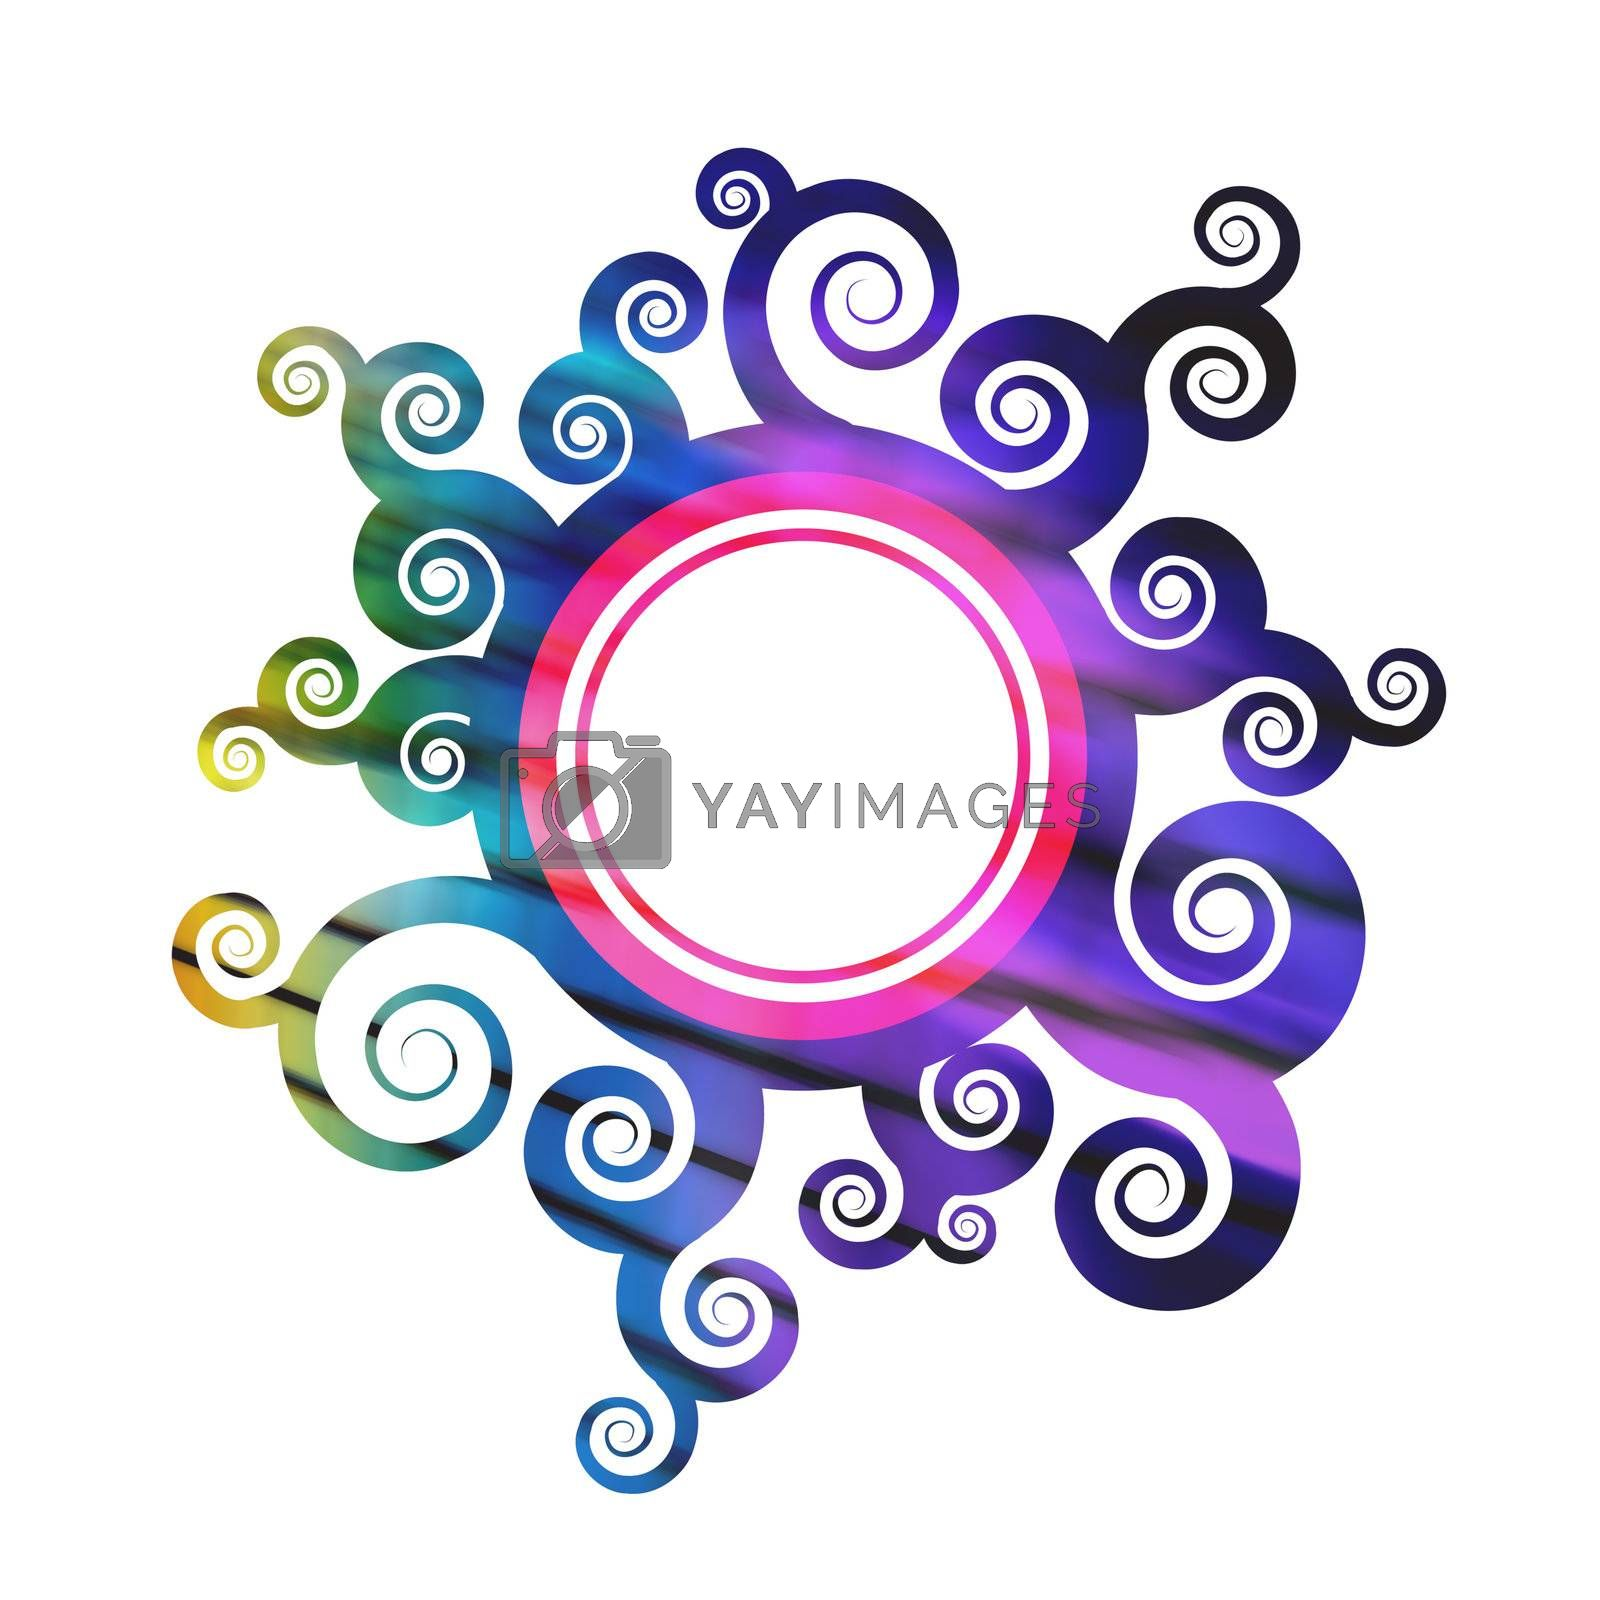 A rainbow colored floral foliage frame with a circular center.